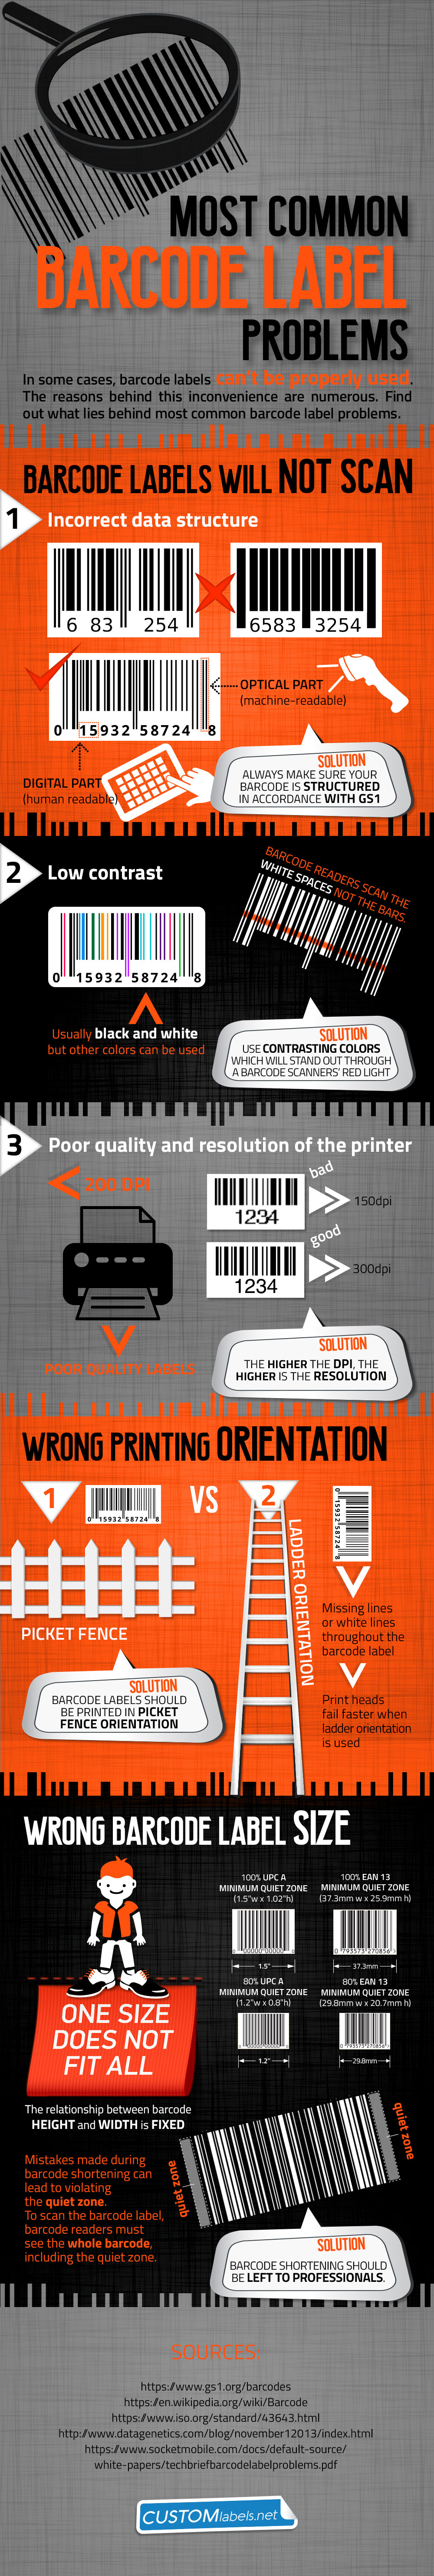 most-common-barcode-label-problems-infographic-plaza